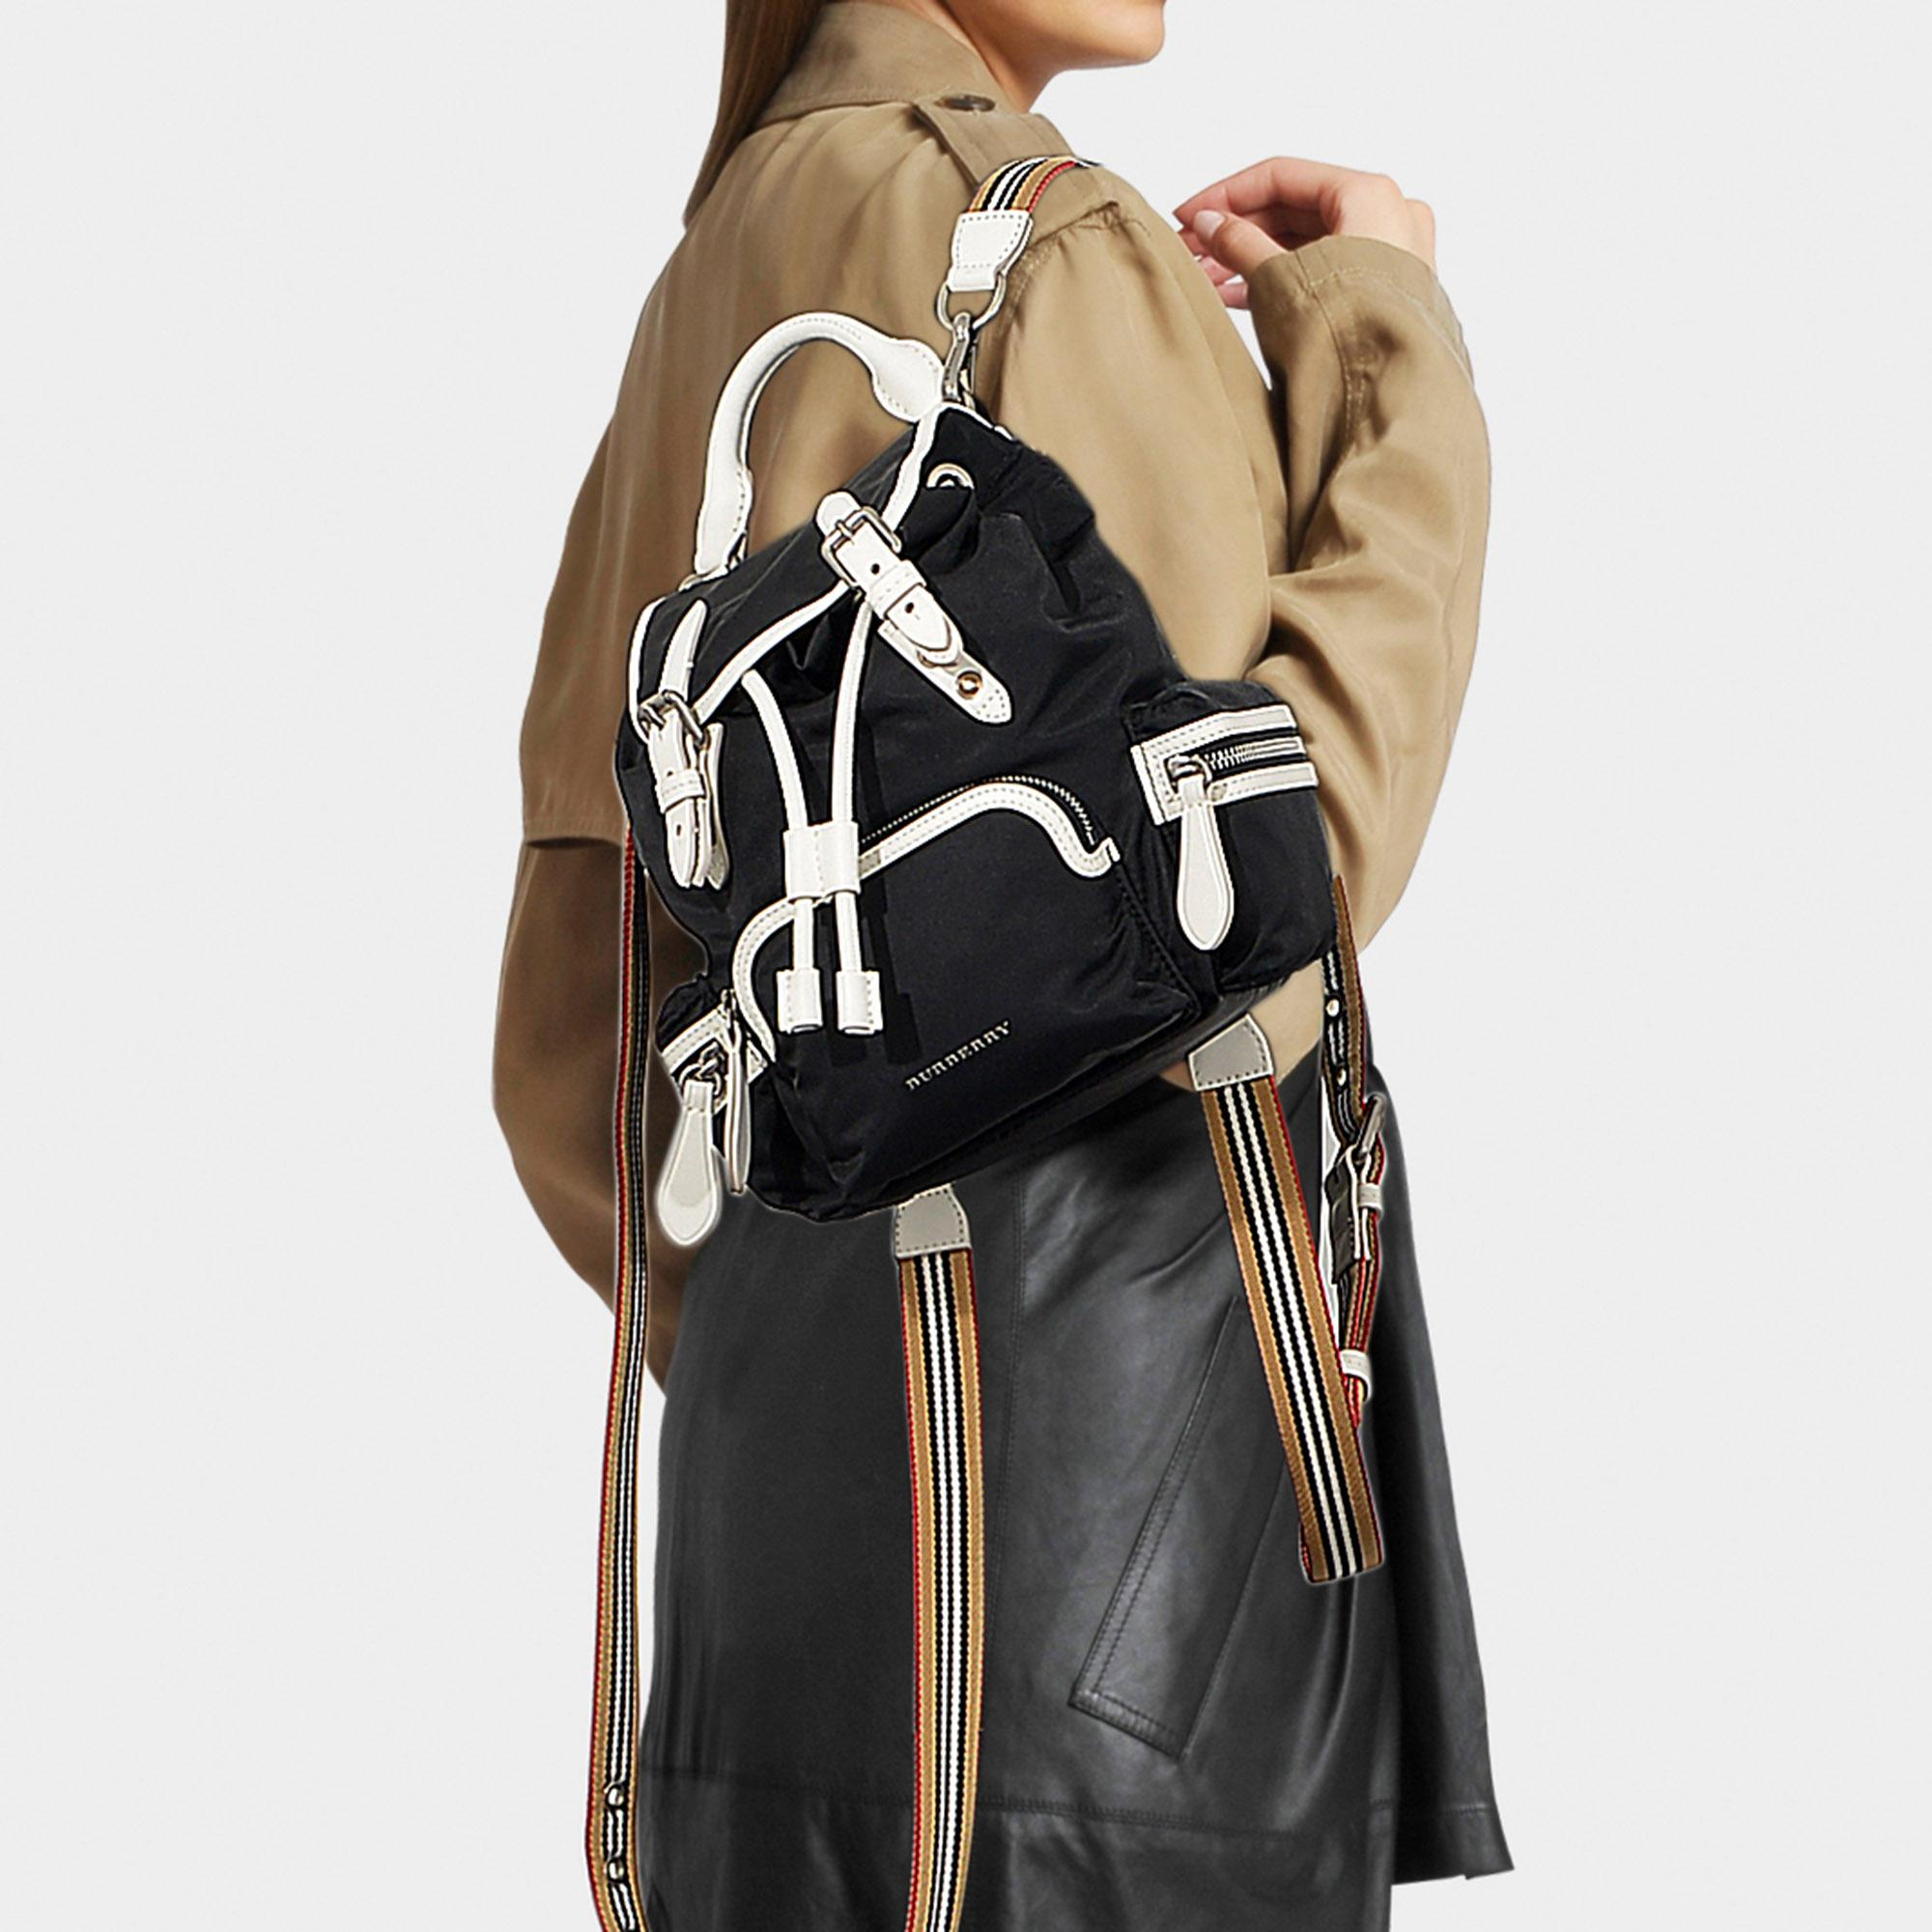 Lyst - Burberry The Rucksack Small Backpack In Black Nylon in Black a53554fd1d951